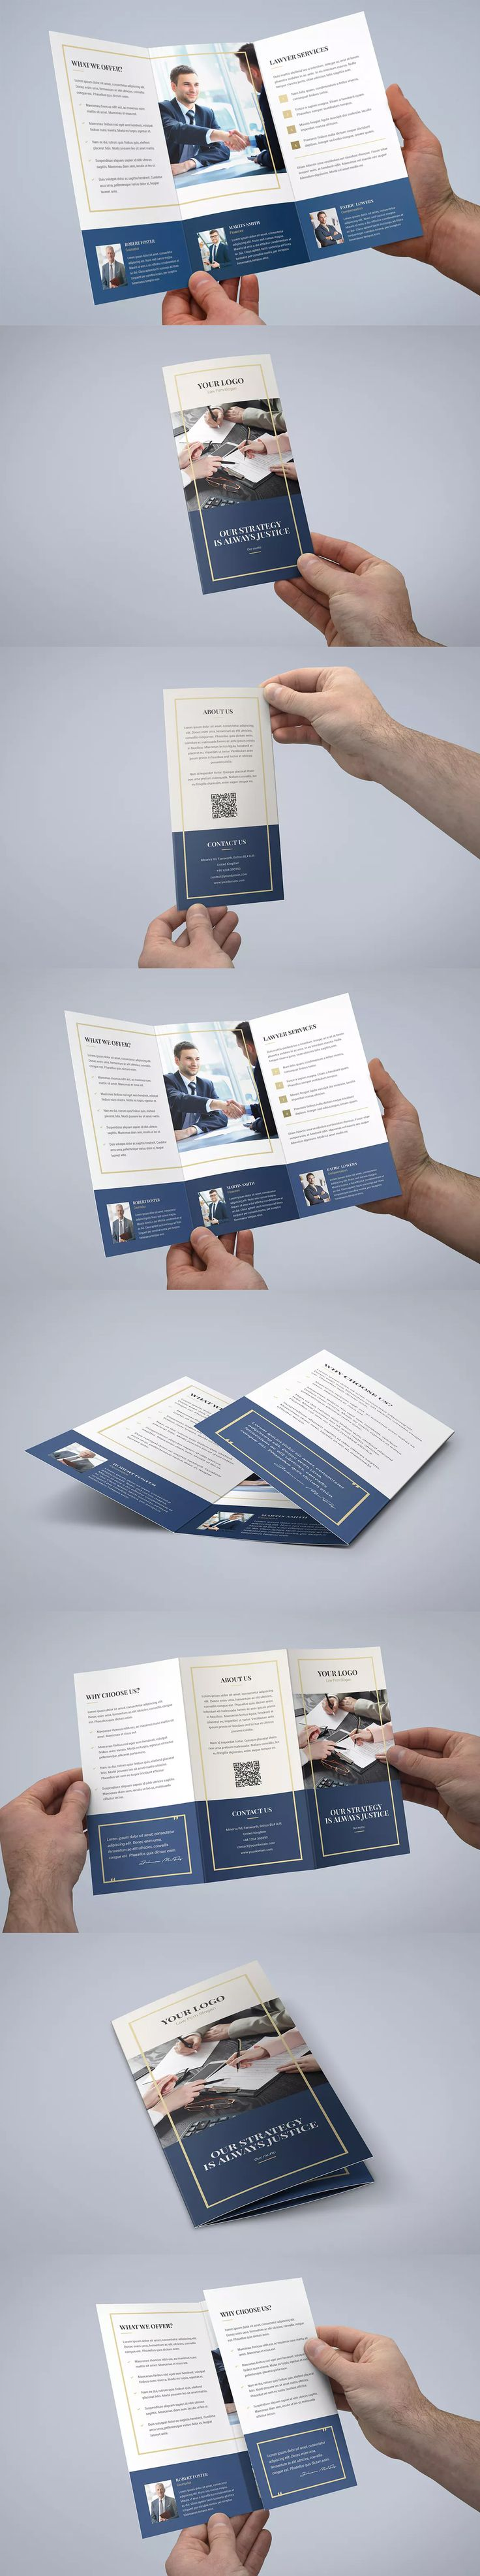 Law Firm Tri-Fold Brochure Template PSD - A4 and US Letter Size